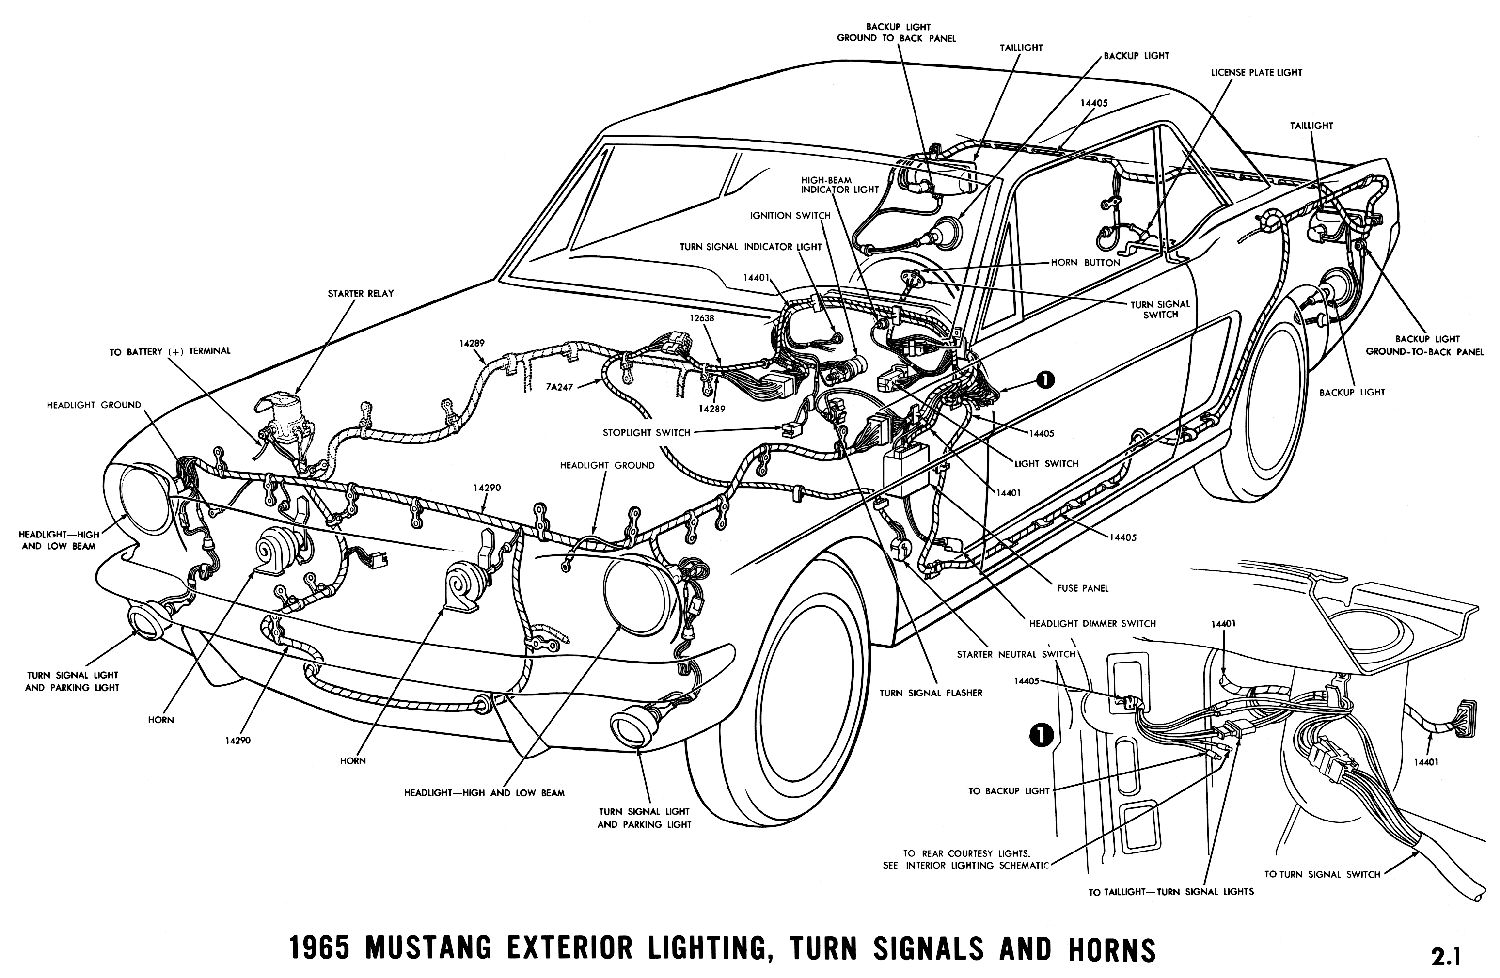 1970 Mustang Wiring Diagram Pdf : 31 Wiring Diagram Images